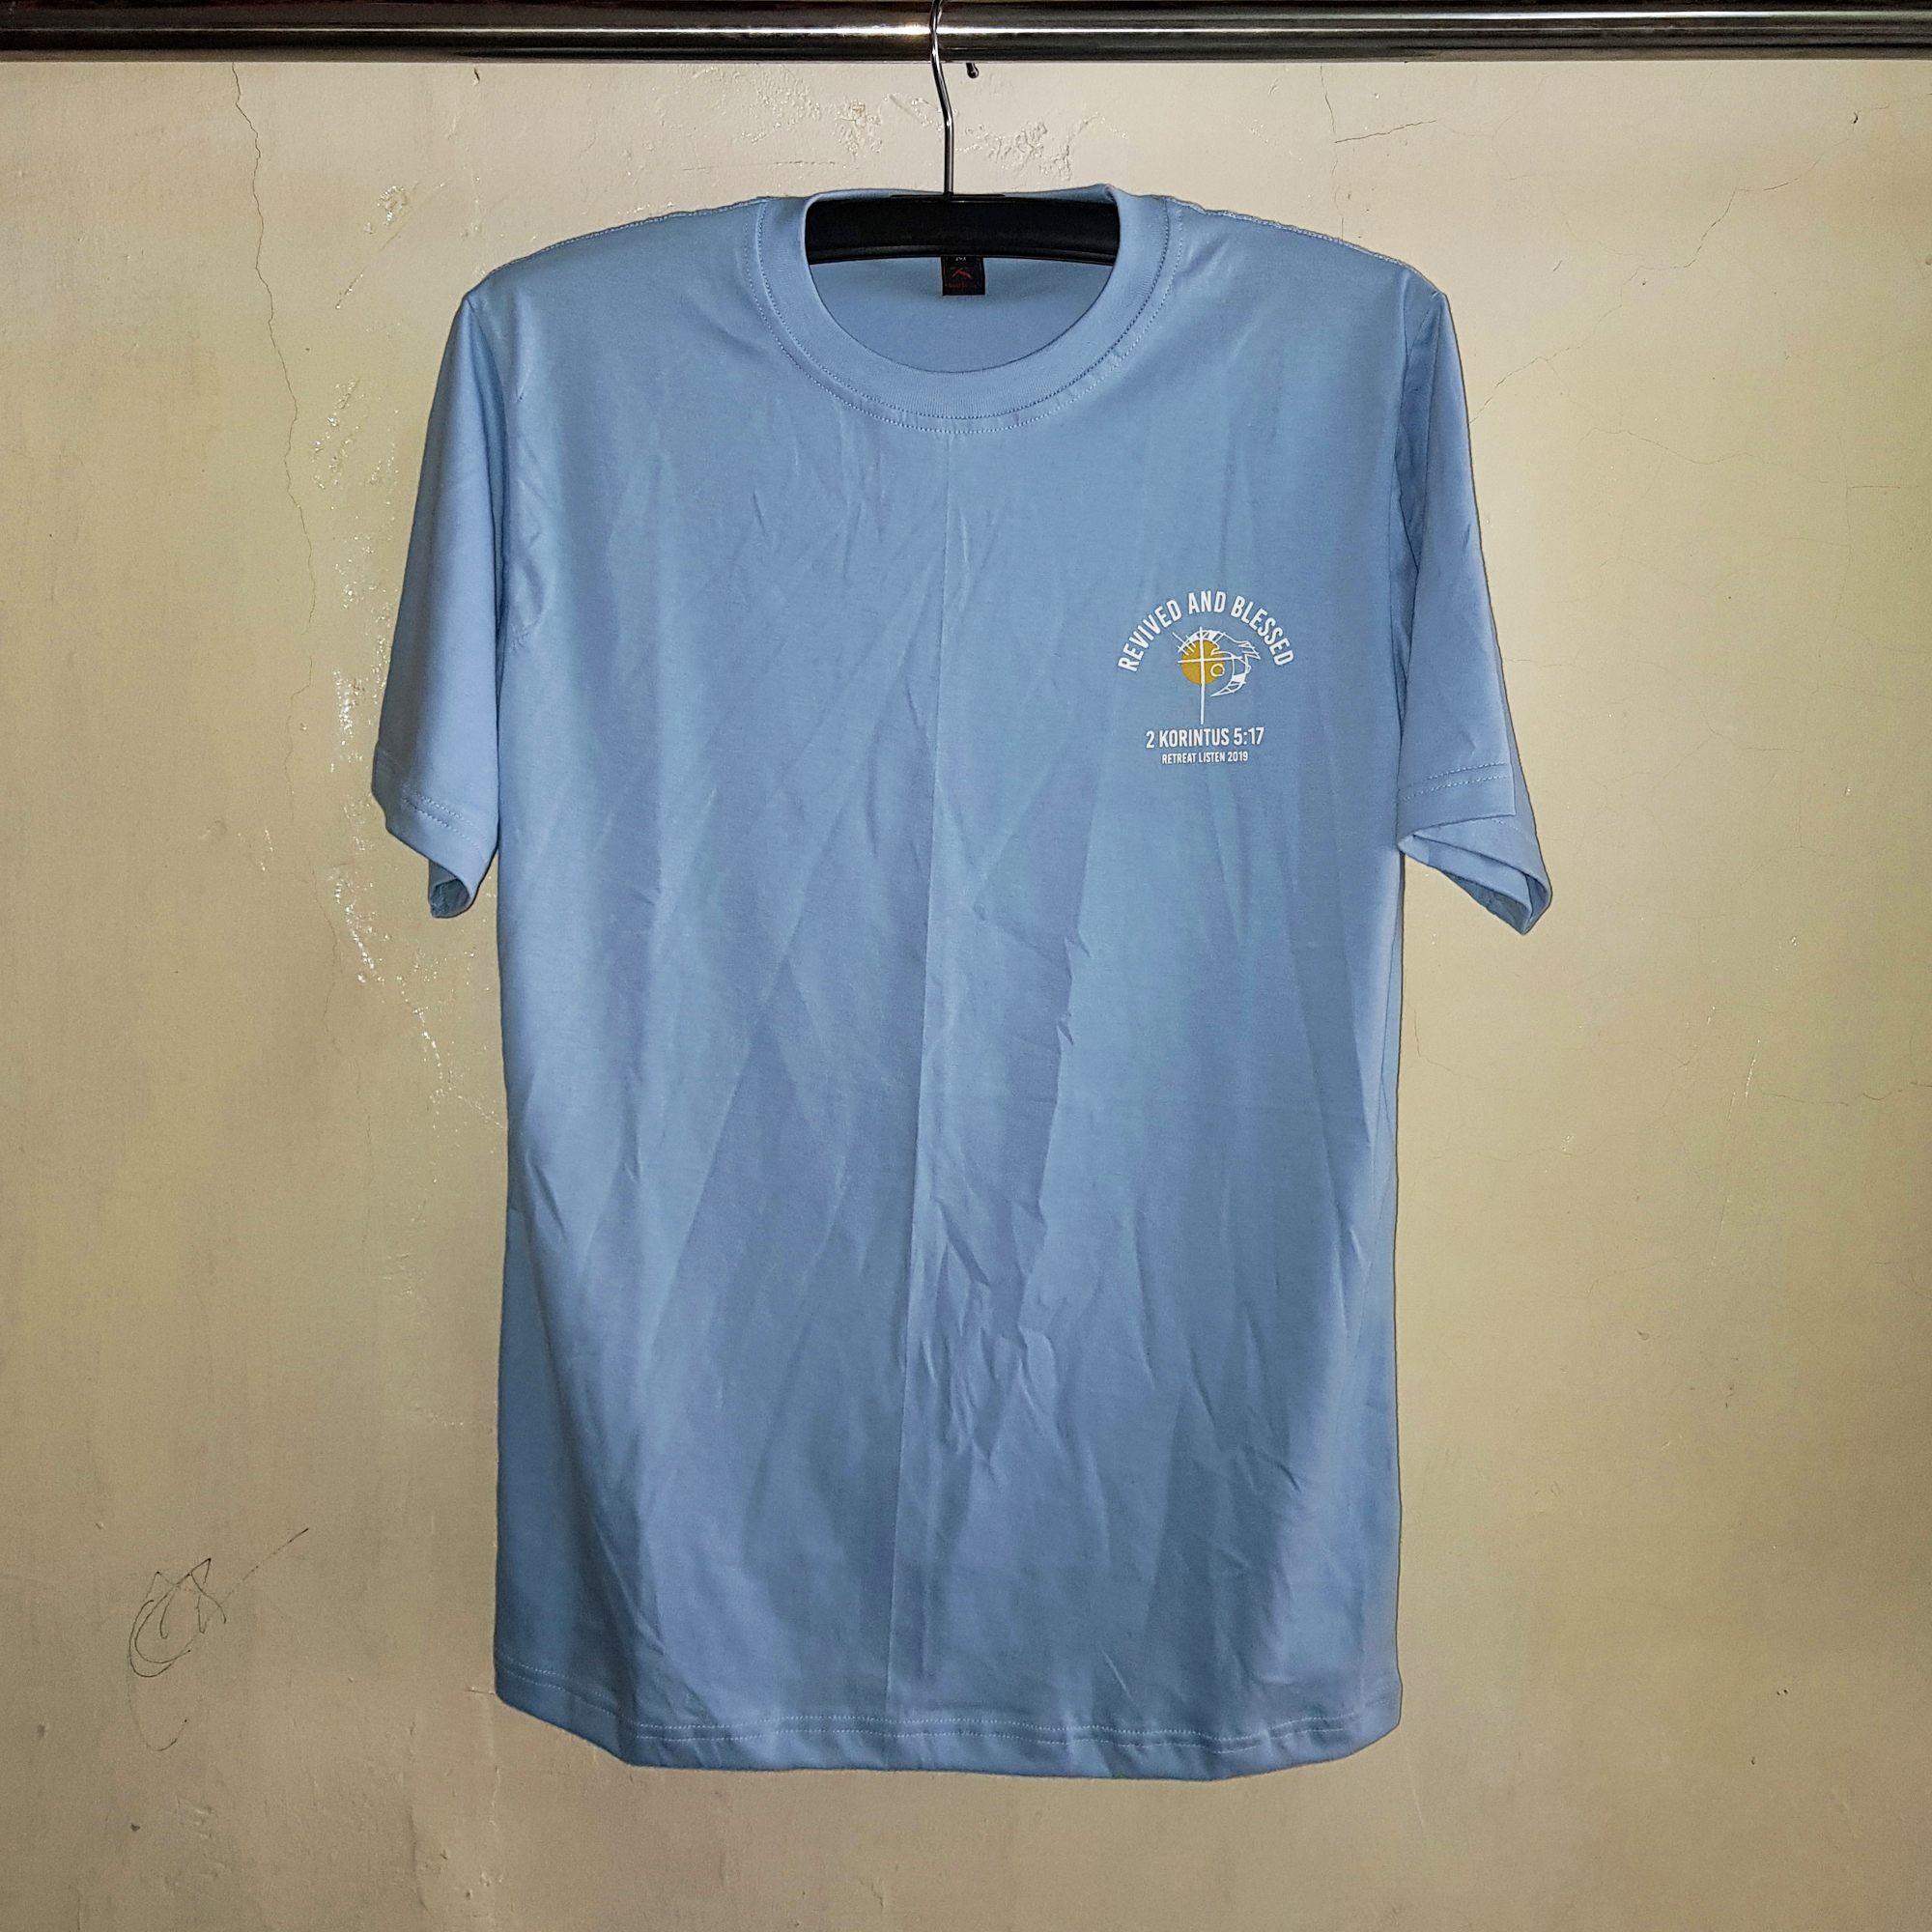 Kaos Oblong Baby Blue, Seragam Kaos Cotton